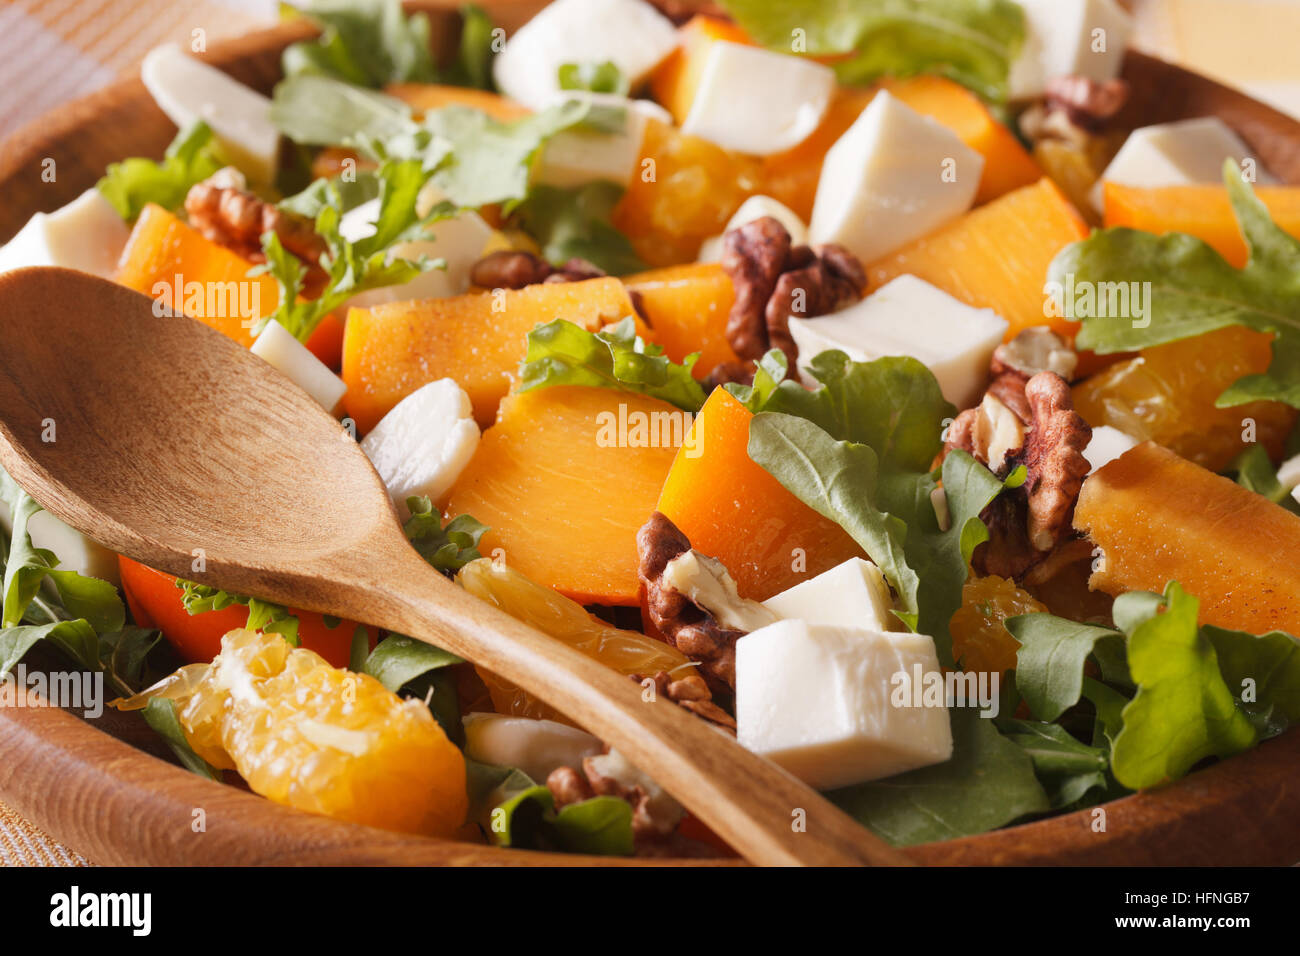 Healthy salad with persimmons, walnuts, arugula, cheese and oranges macro. horizontal - Stock Image